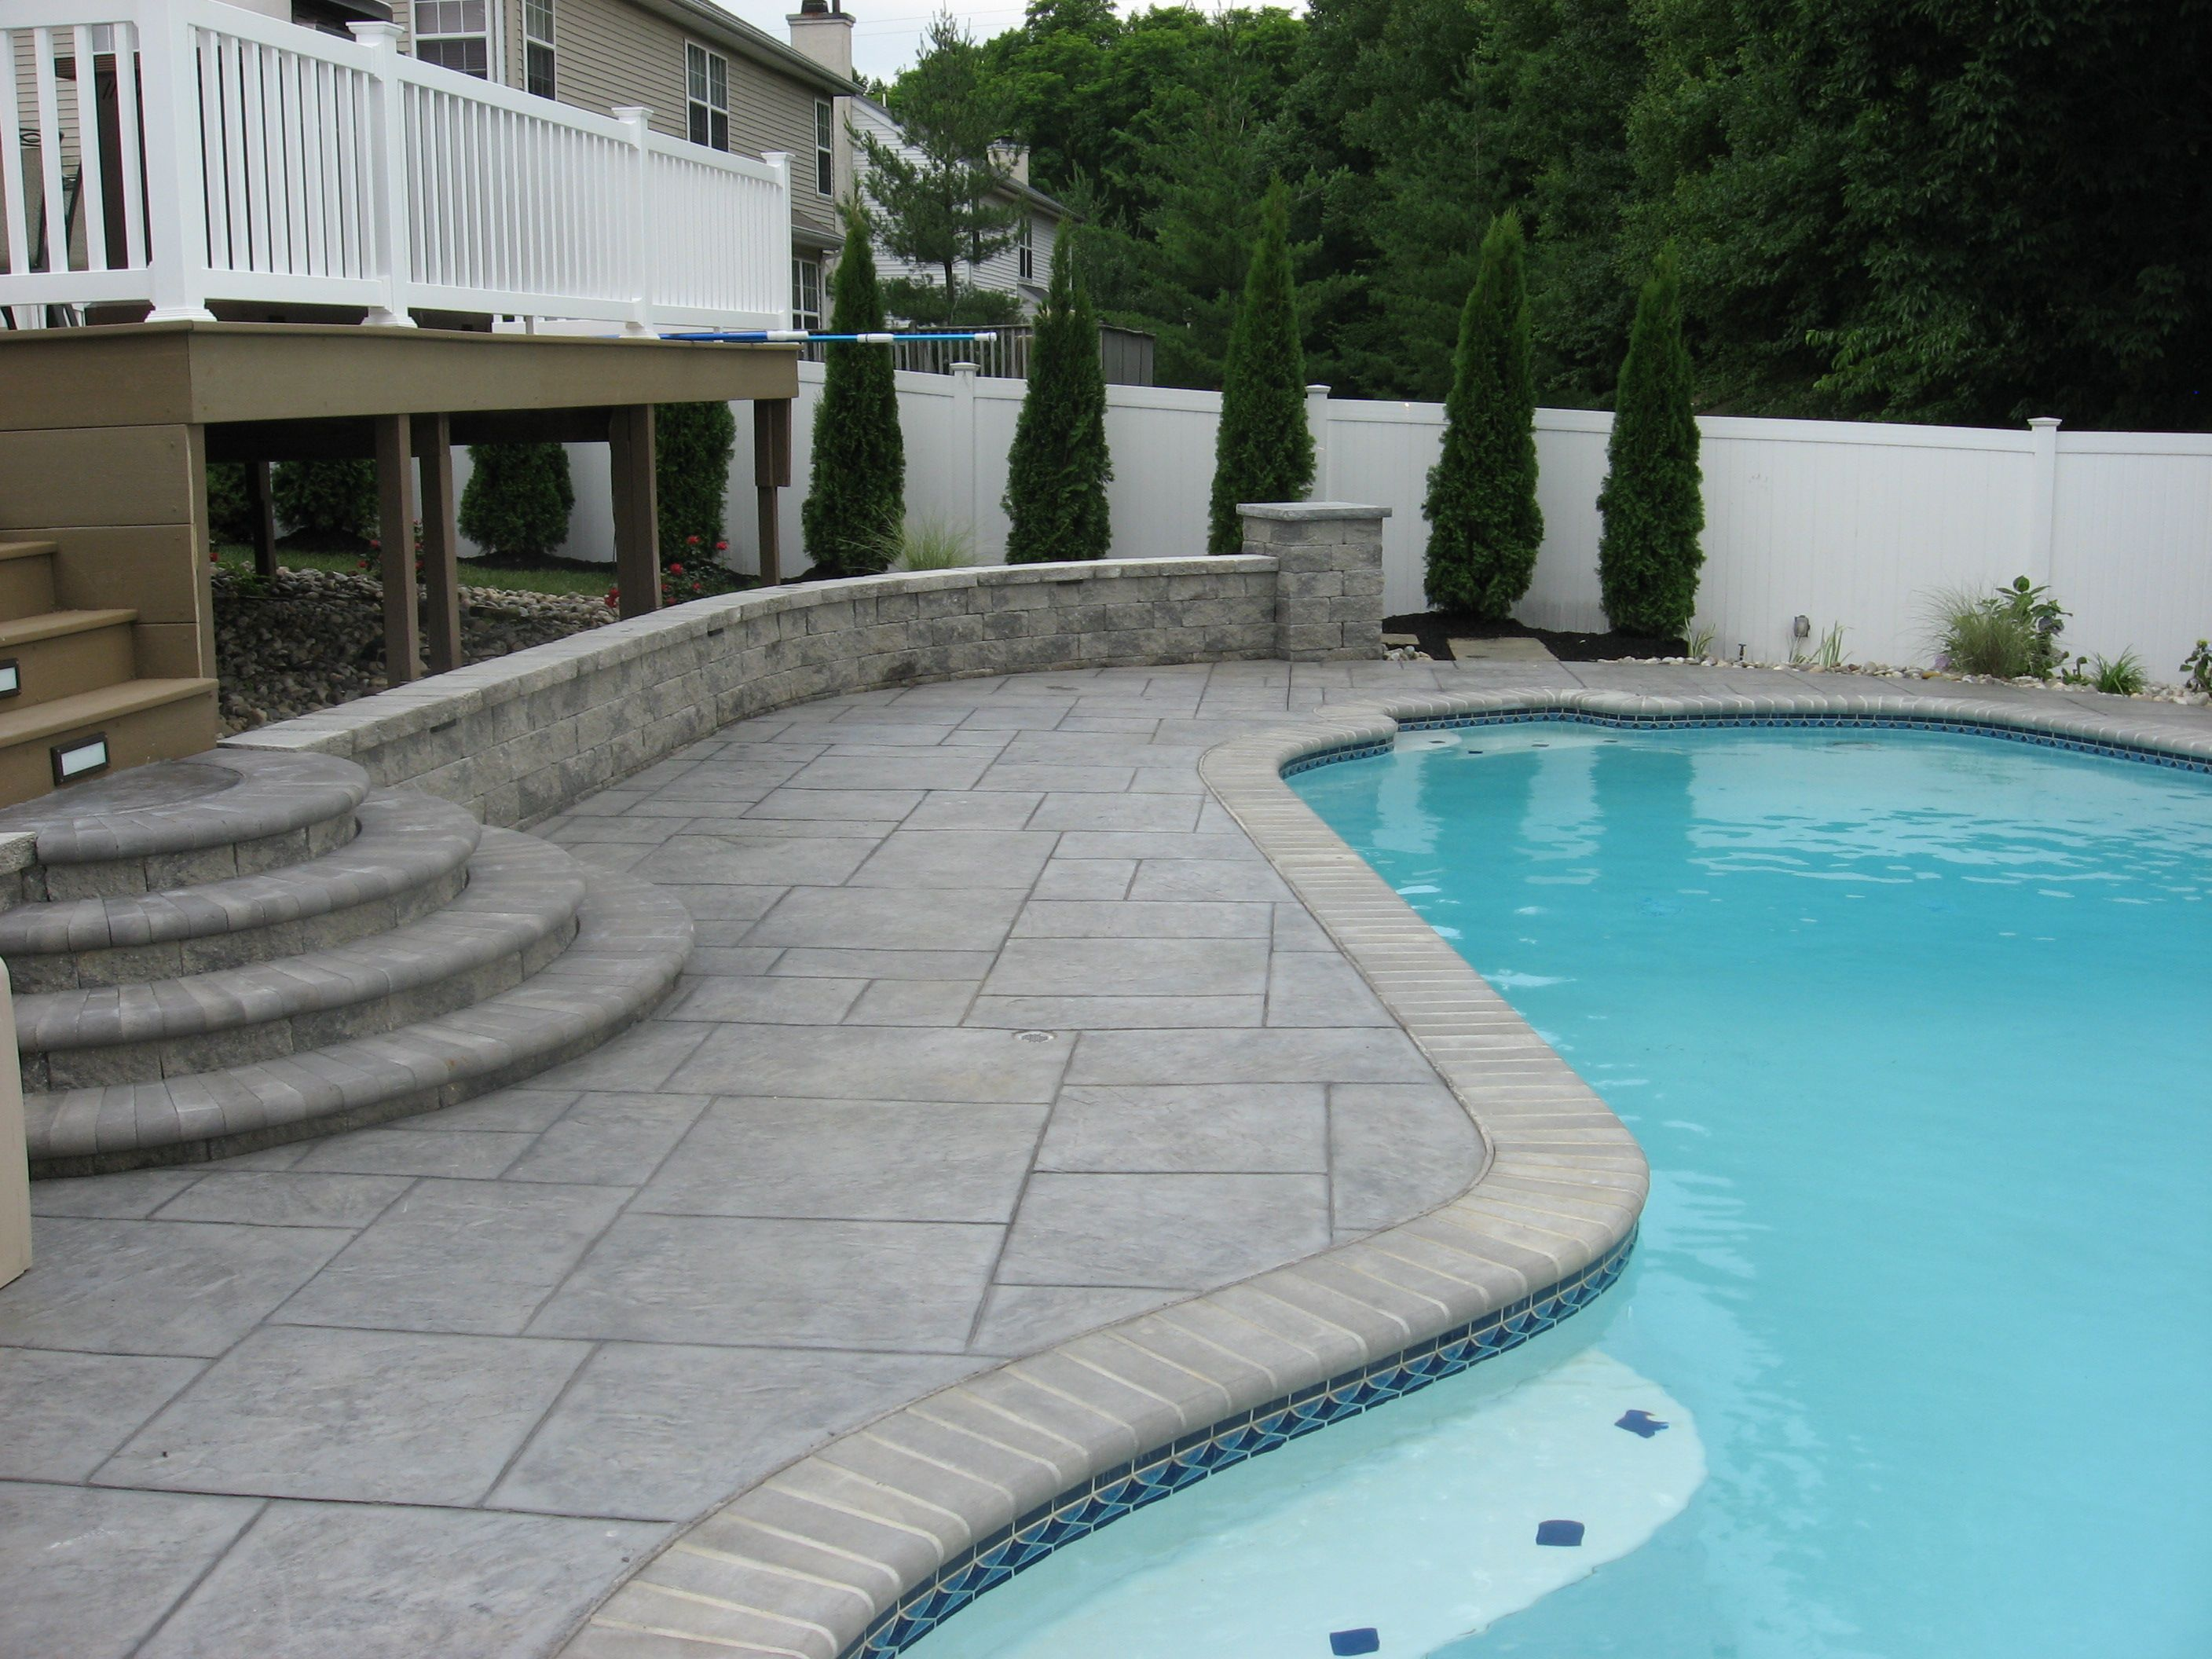 Pool Beton Stamped Concrete Patios Around A Pool | Pattern Concrete